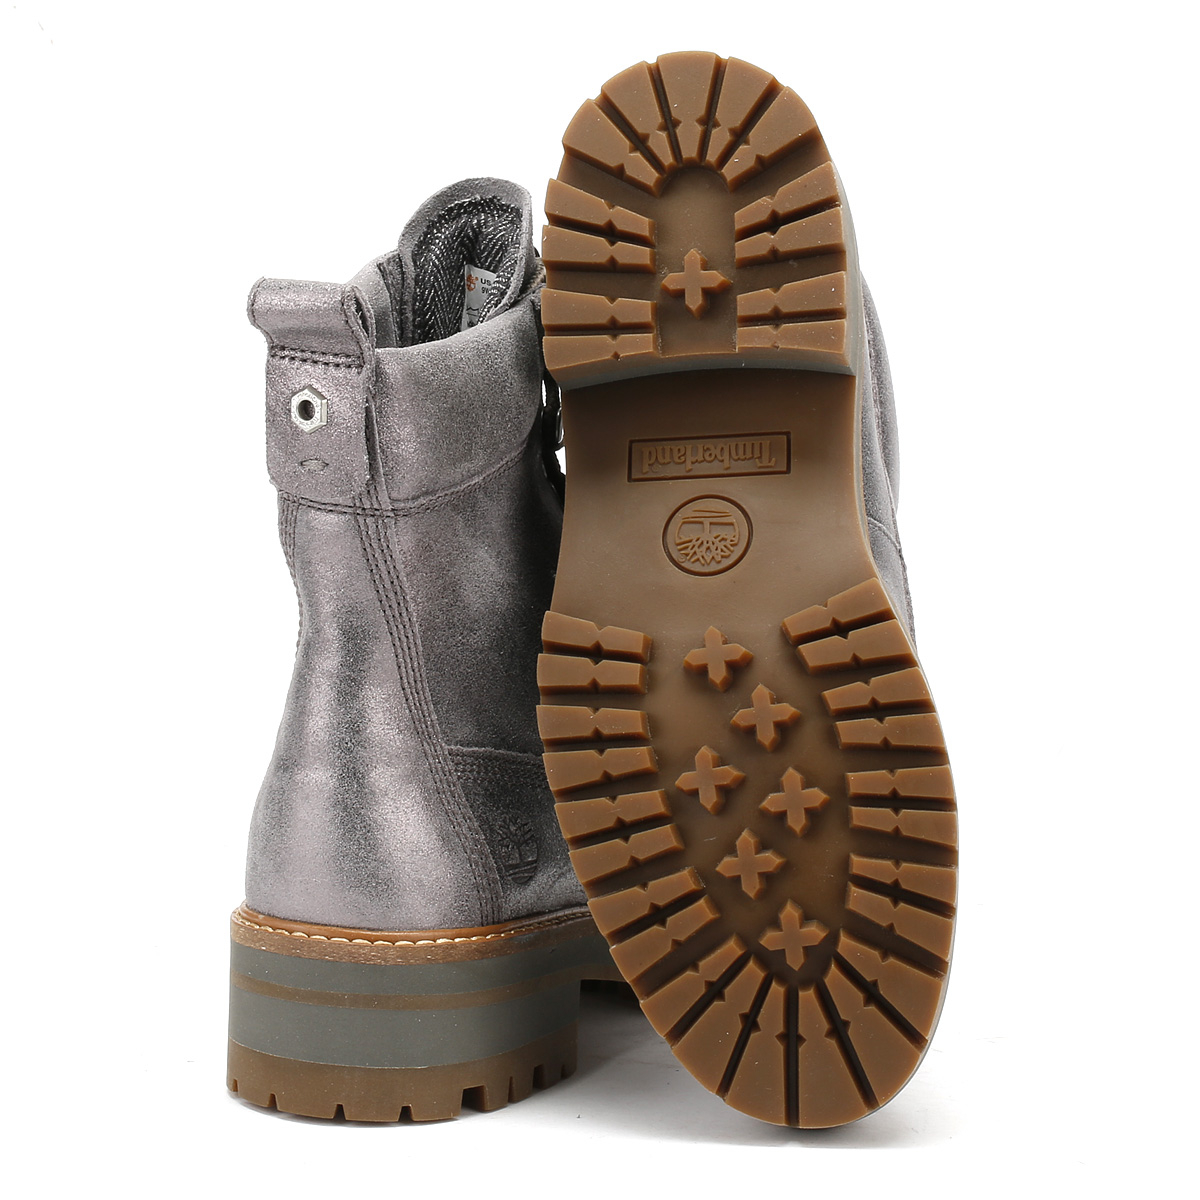 Metallic Leather Boots : Timberland womens silver courmayeur valley boots metallic